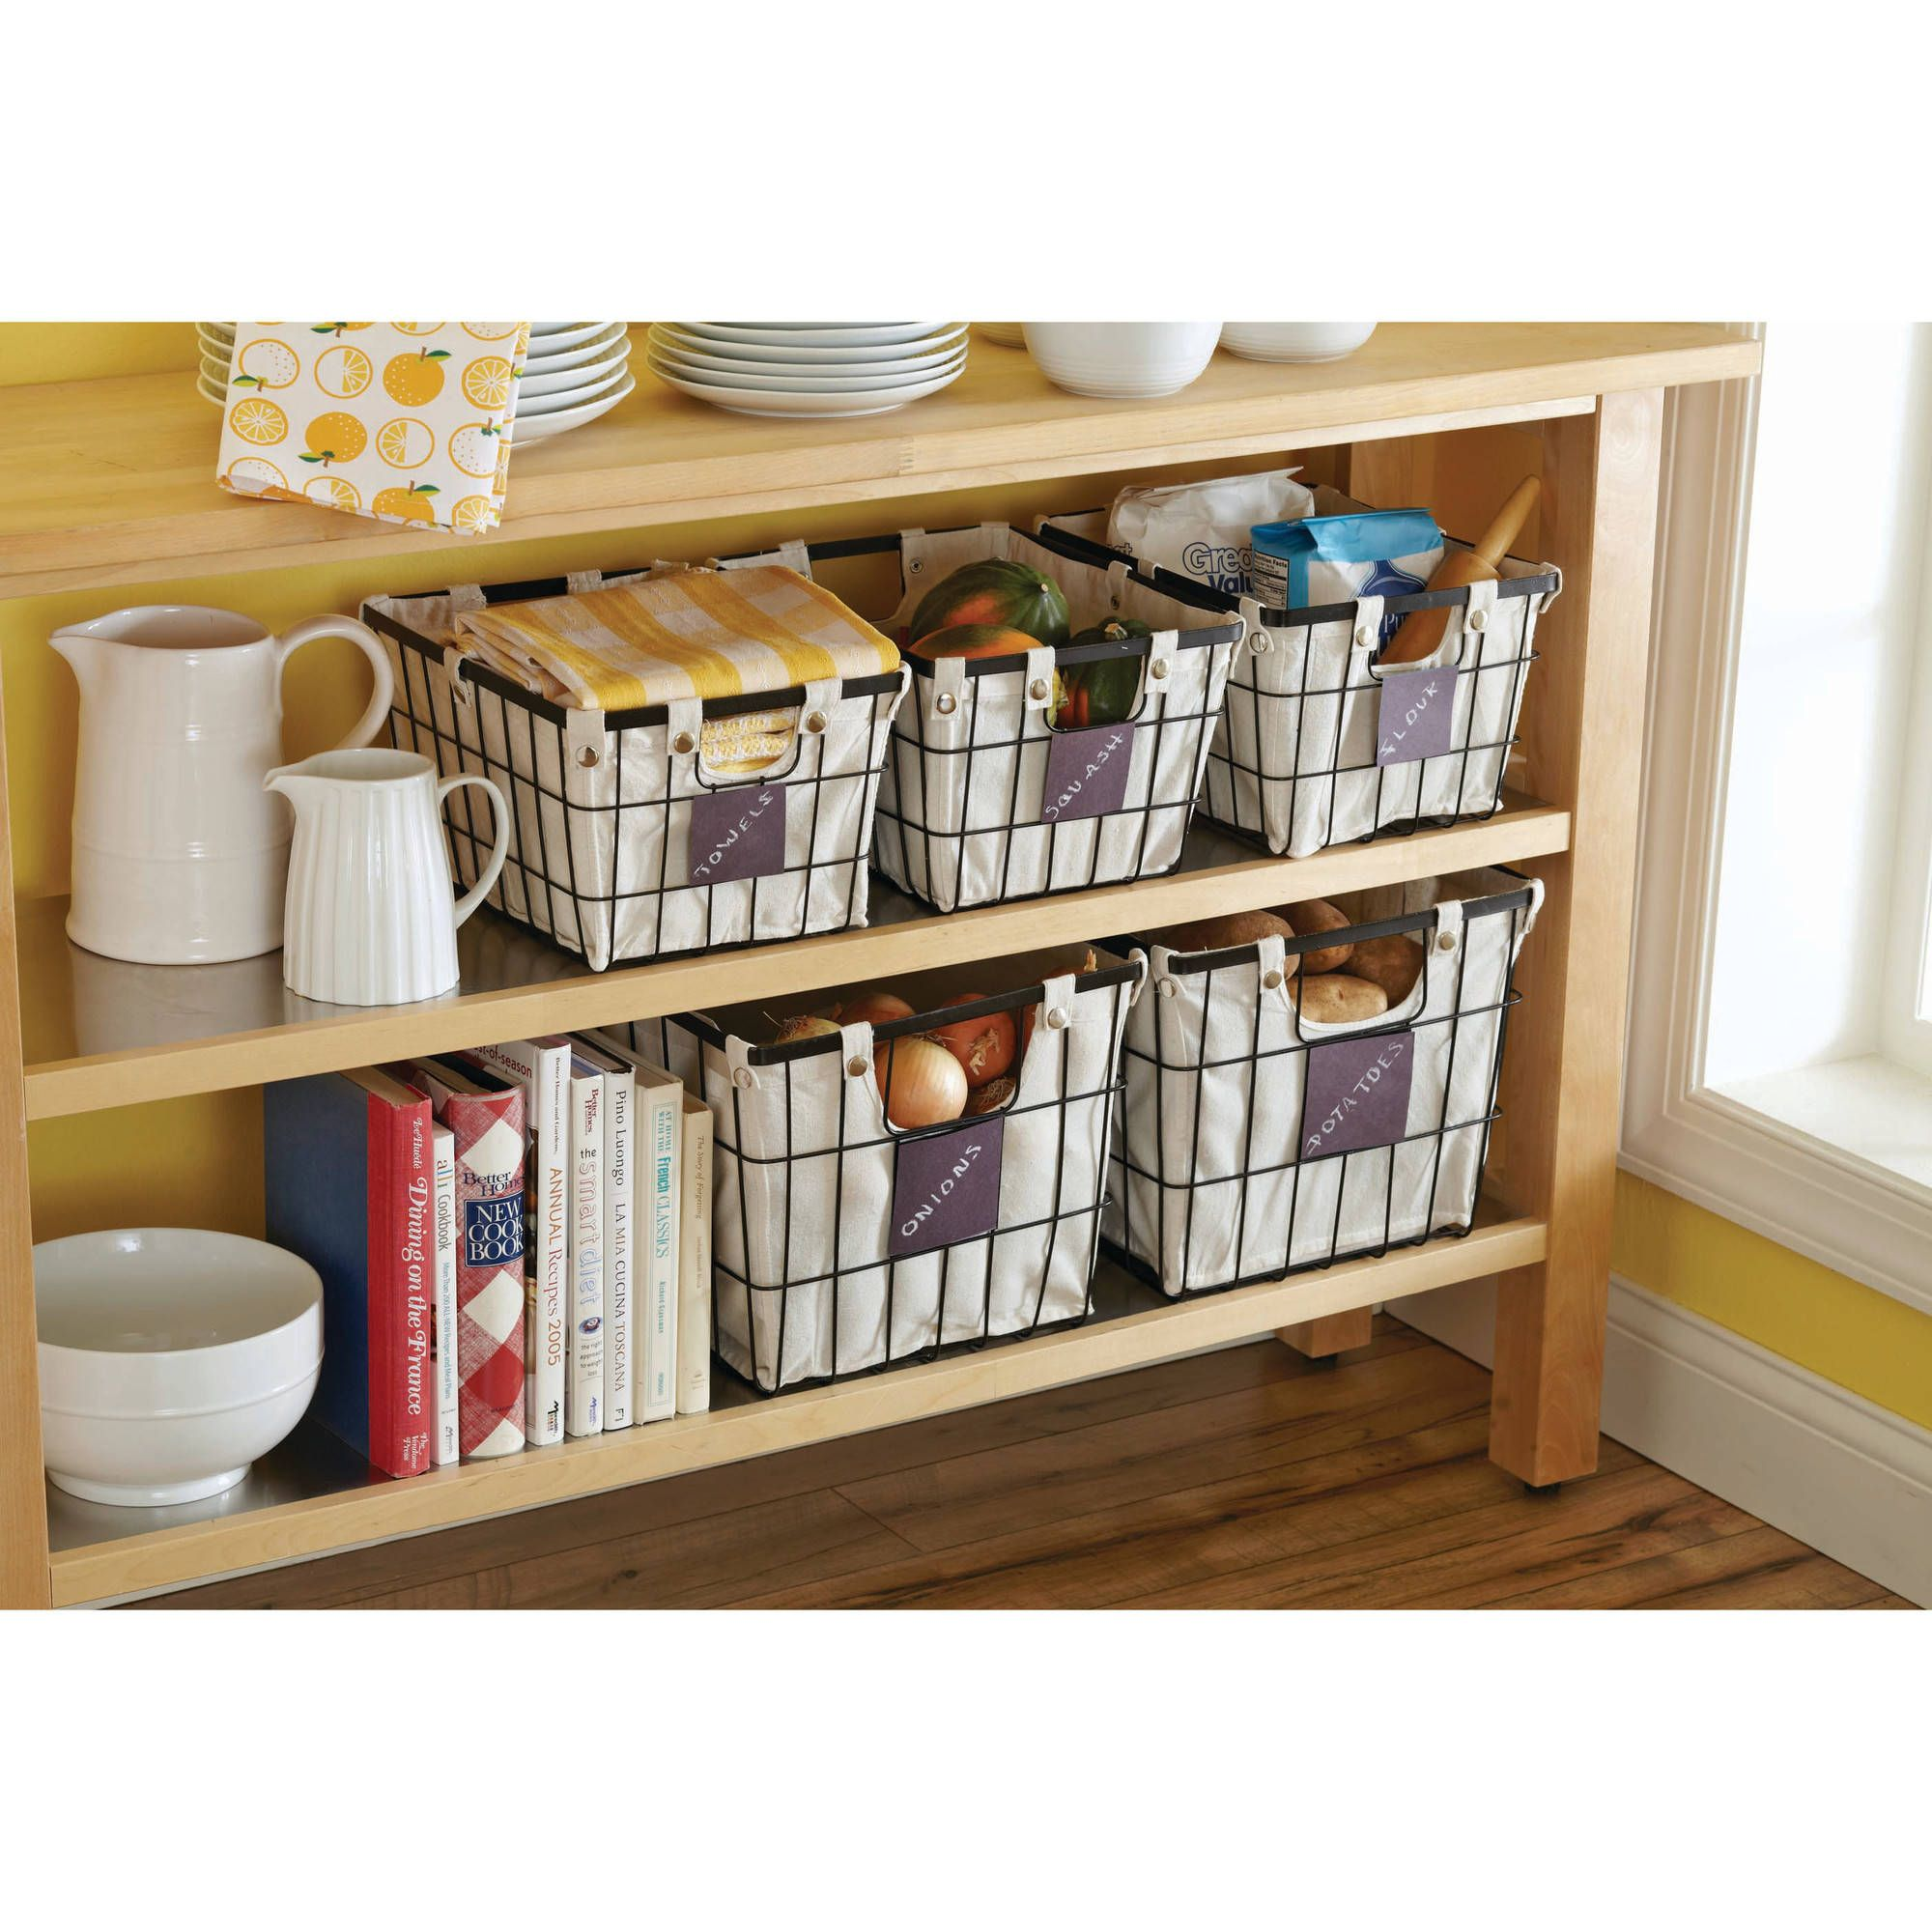 2ba44278c818bcaa0f8dbb5615cc2415 - Better Homes And Gardens Wire Basket With Chalkboard Black